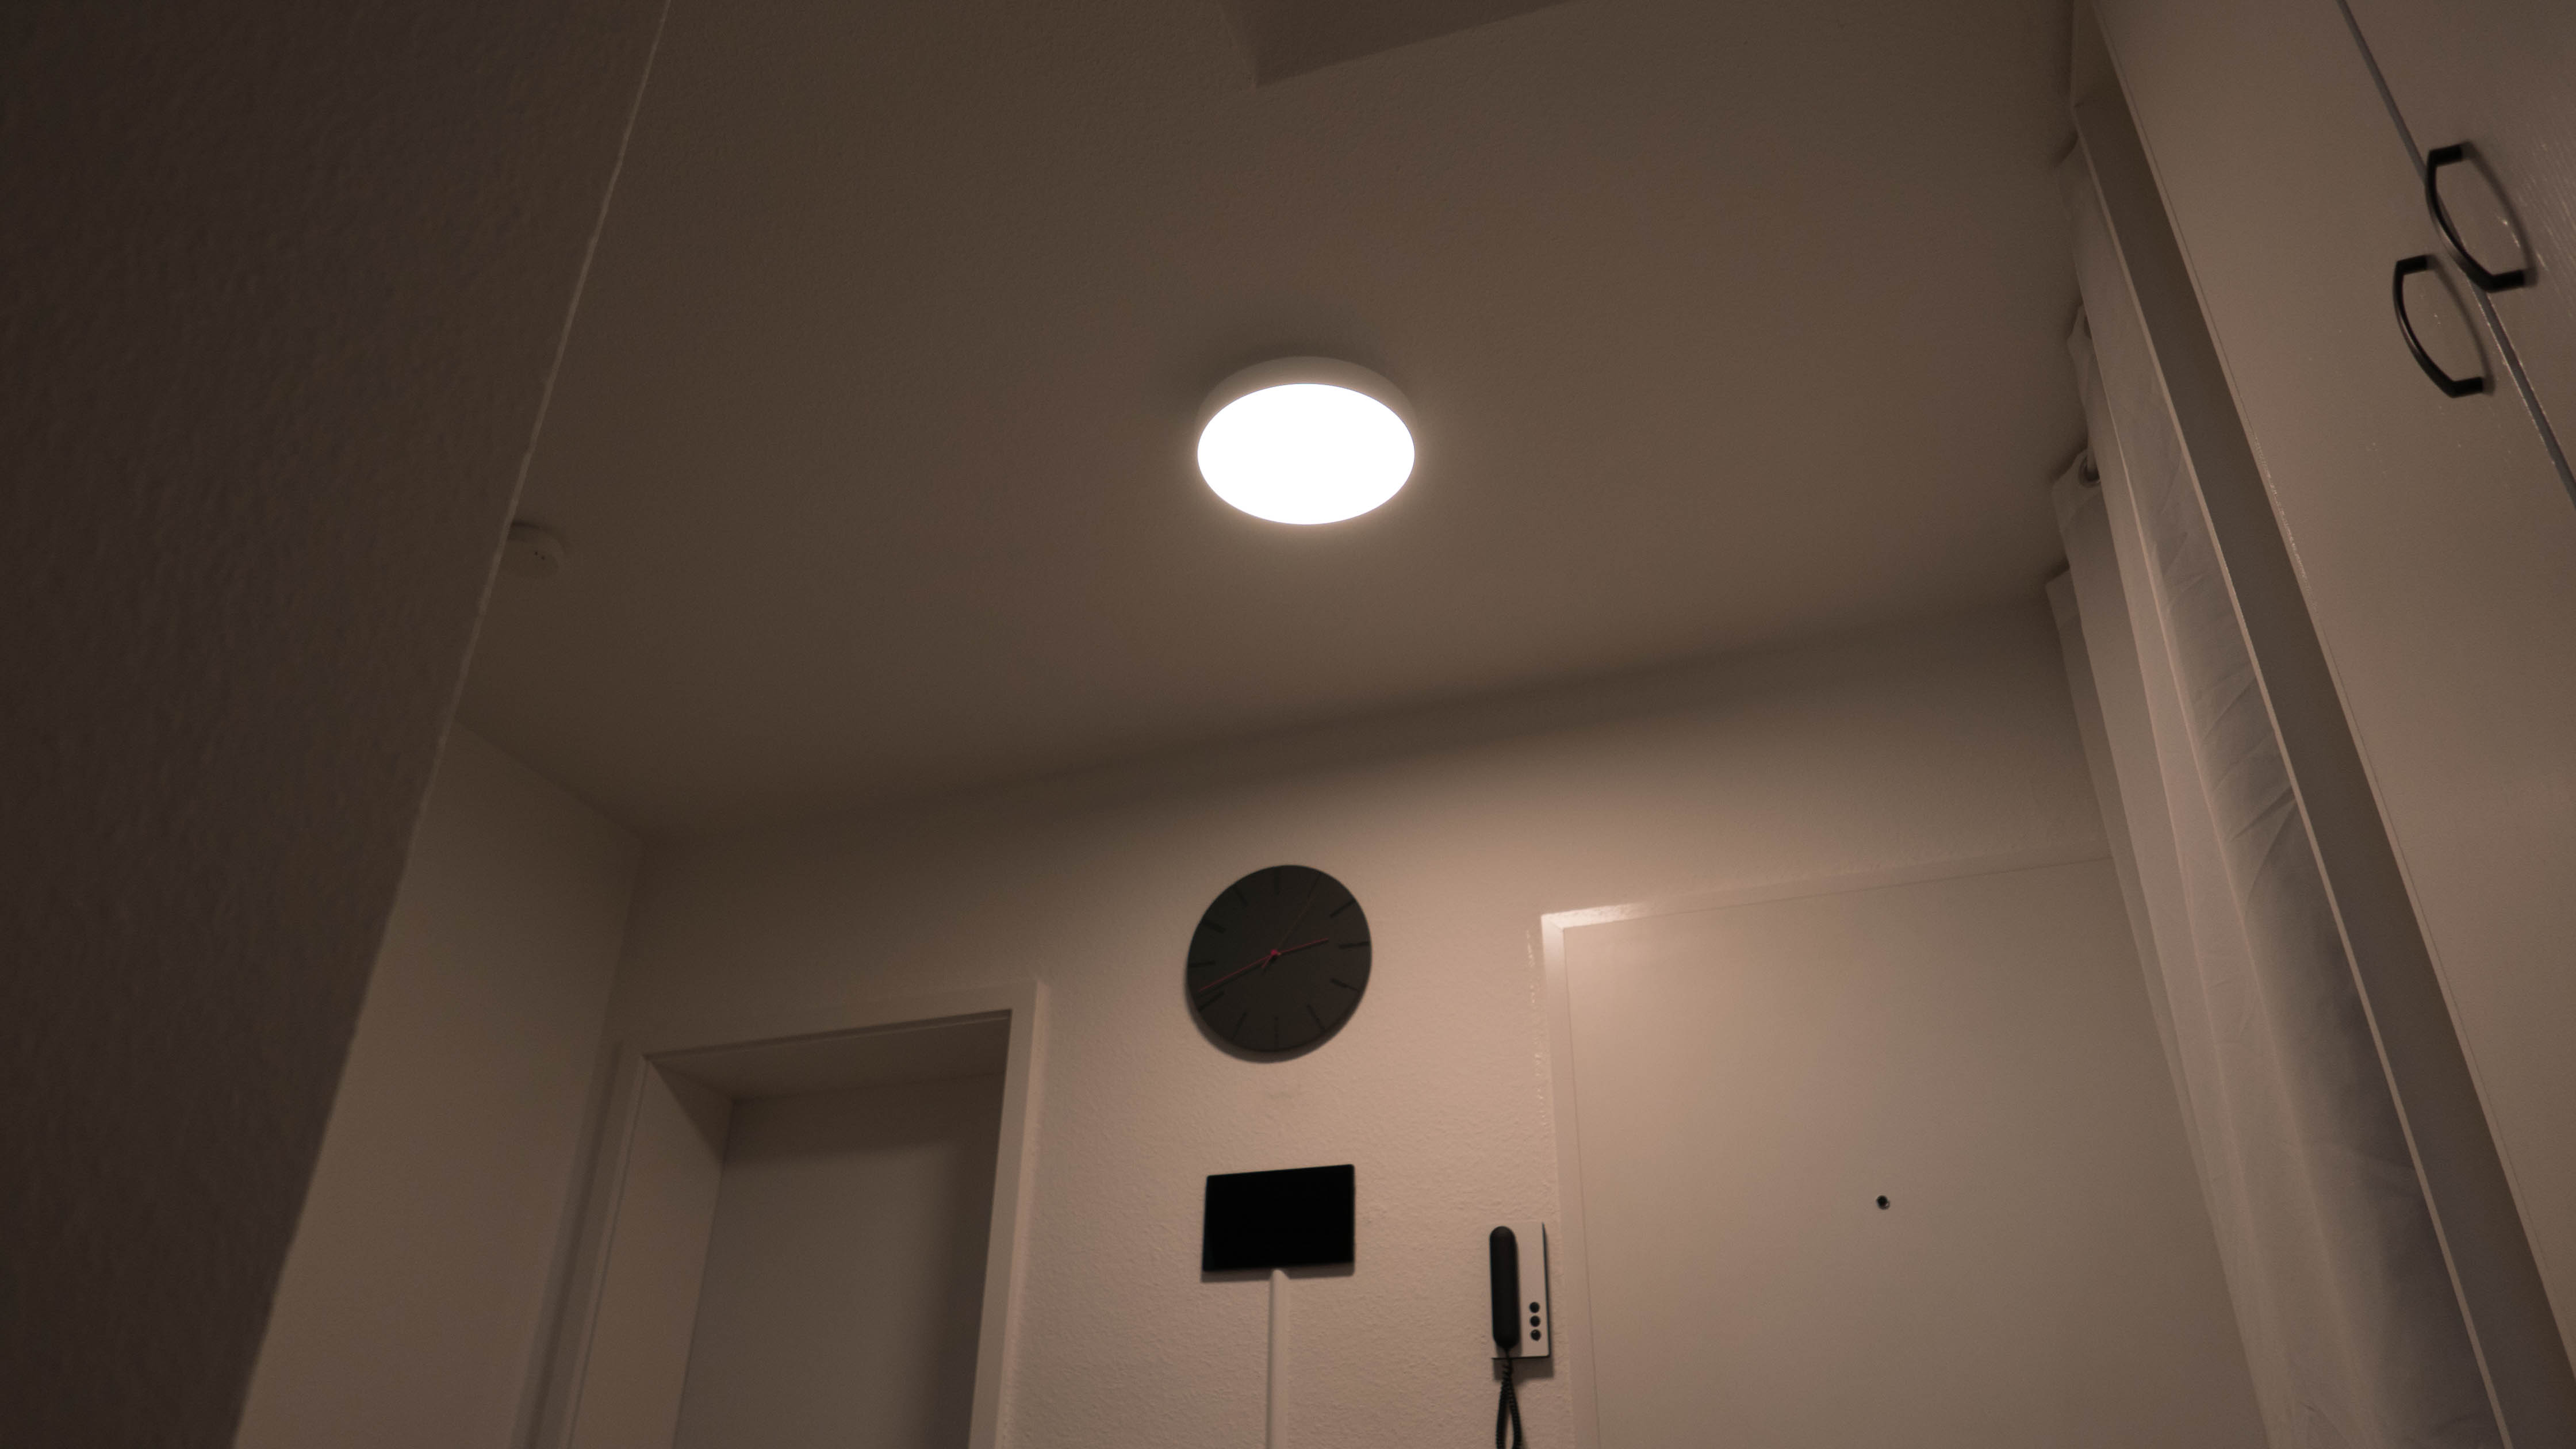 Xiaomi Yeelight LED Ceiling Light Farbtemperatur 2